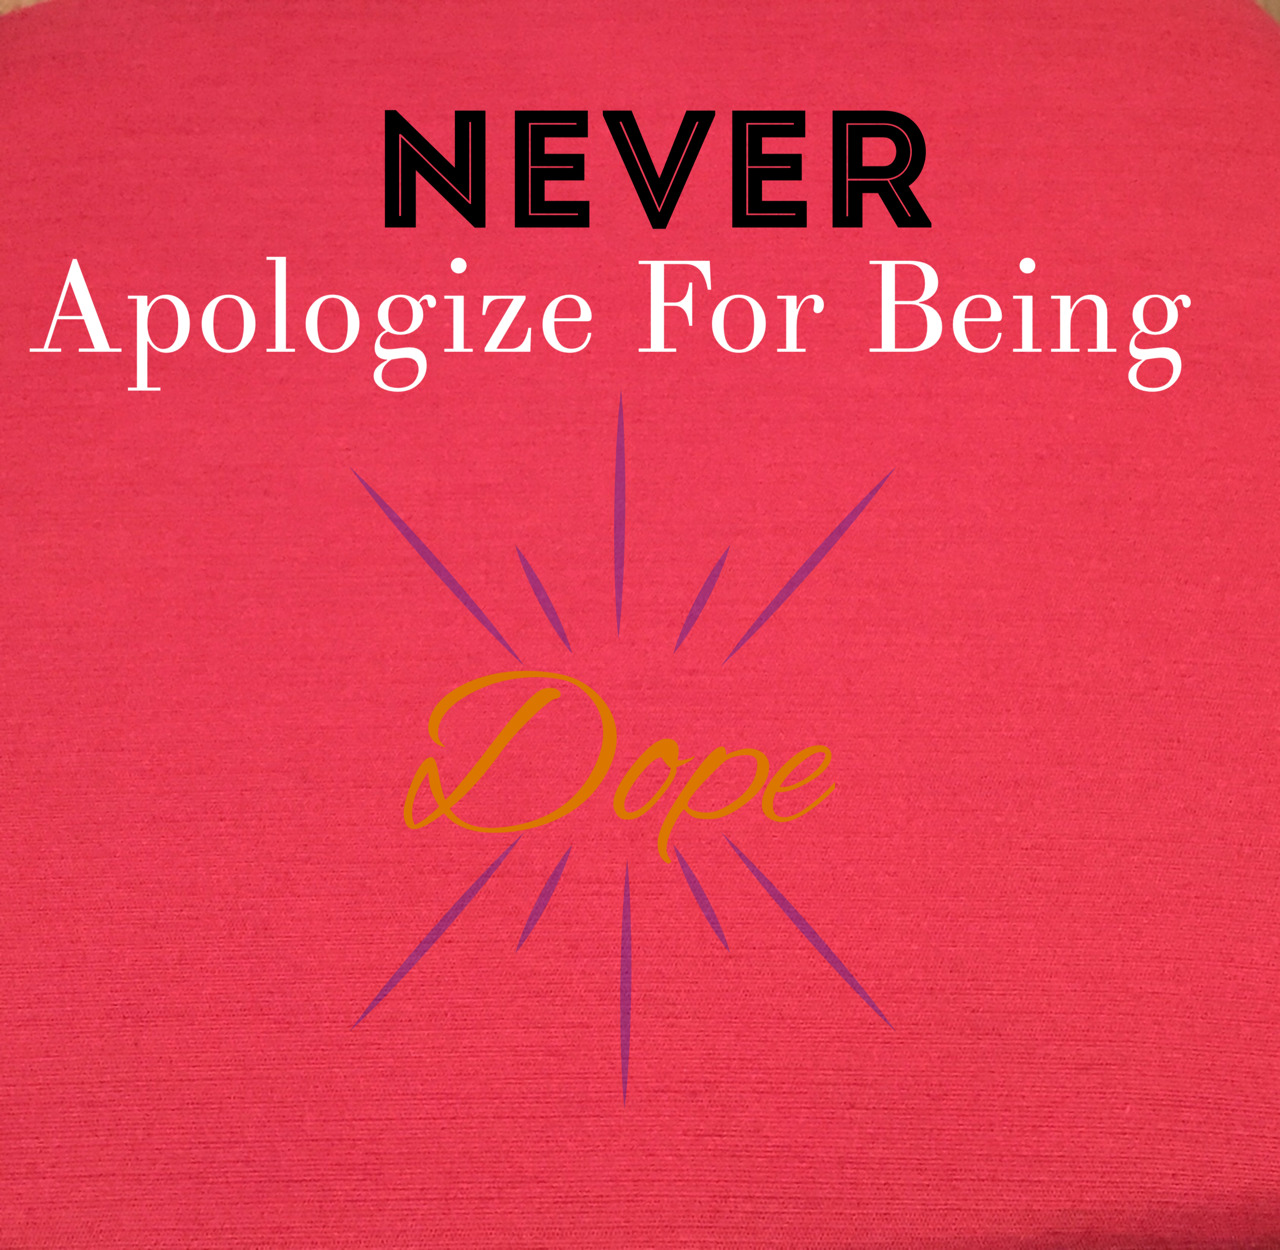 Never apologize for being dope. Watch out 2015. xo -A